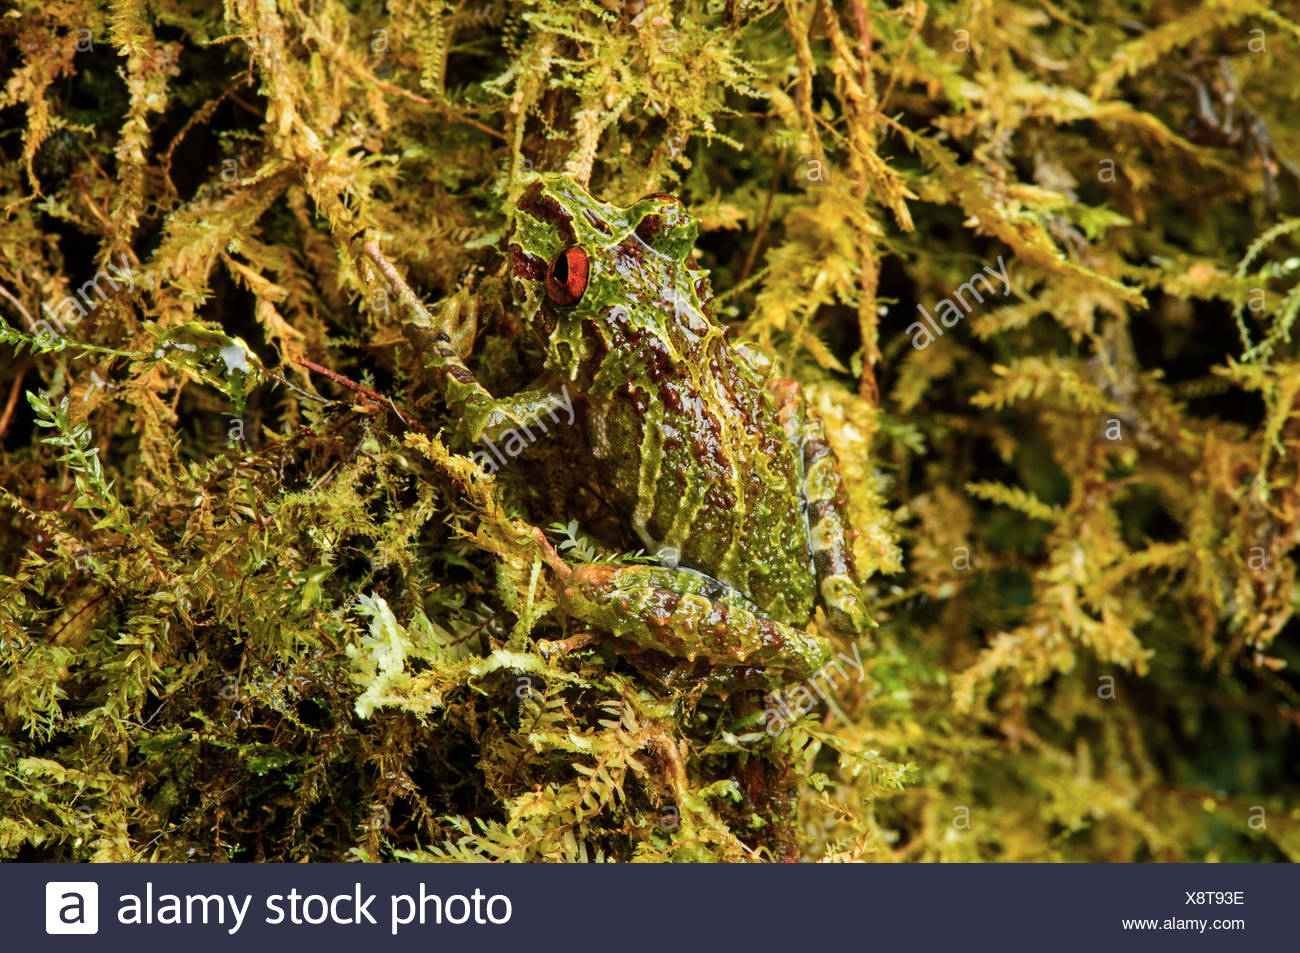 Neotropical frog (Pristimantis eriphus), male, identifiable by the red eyes, Andean cloud forest, Cosanga, Ecuador Stock Photo